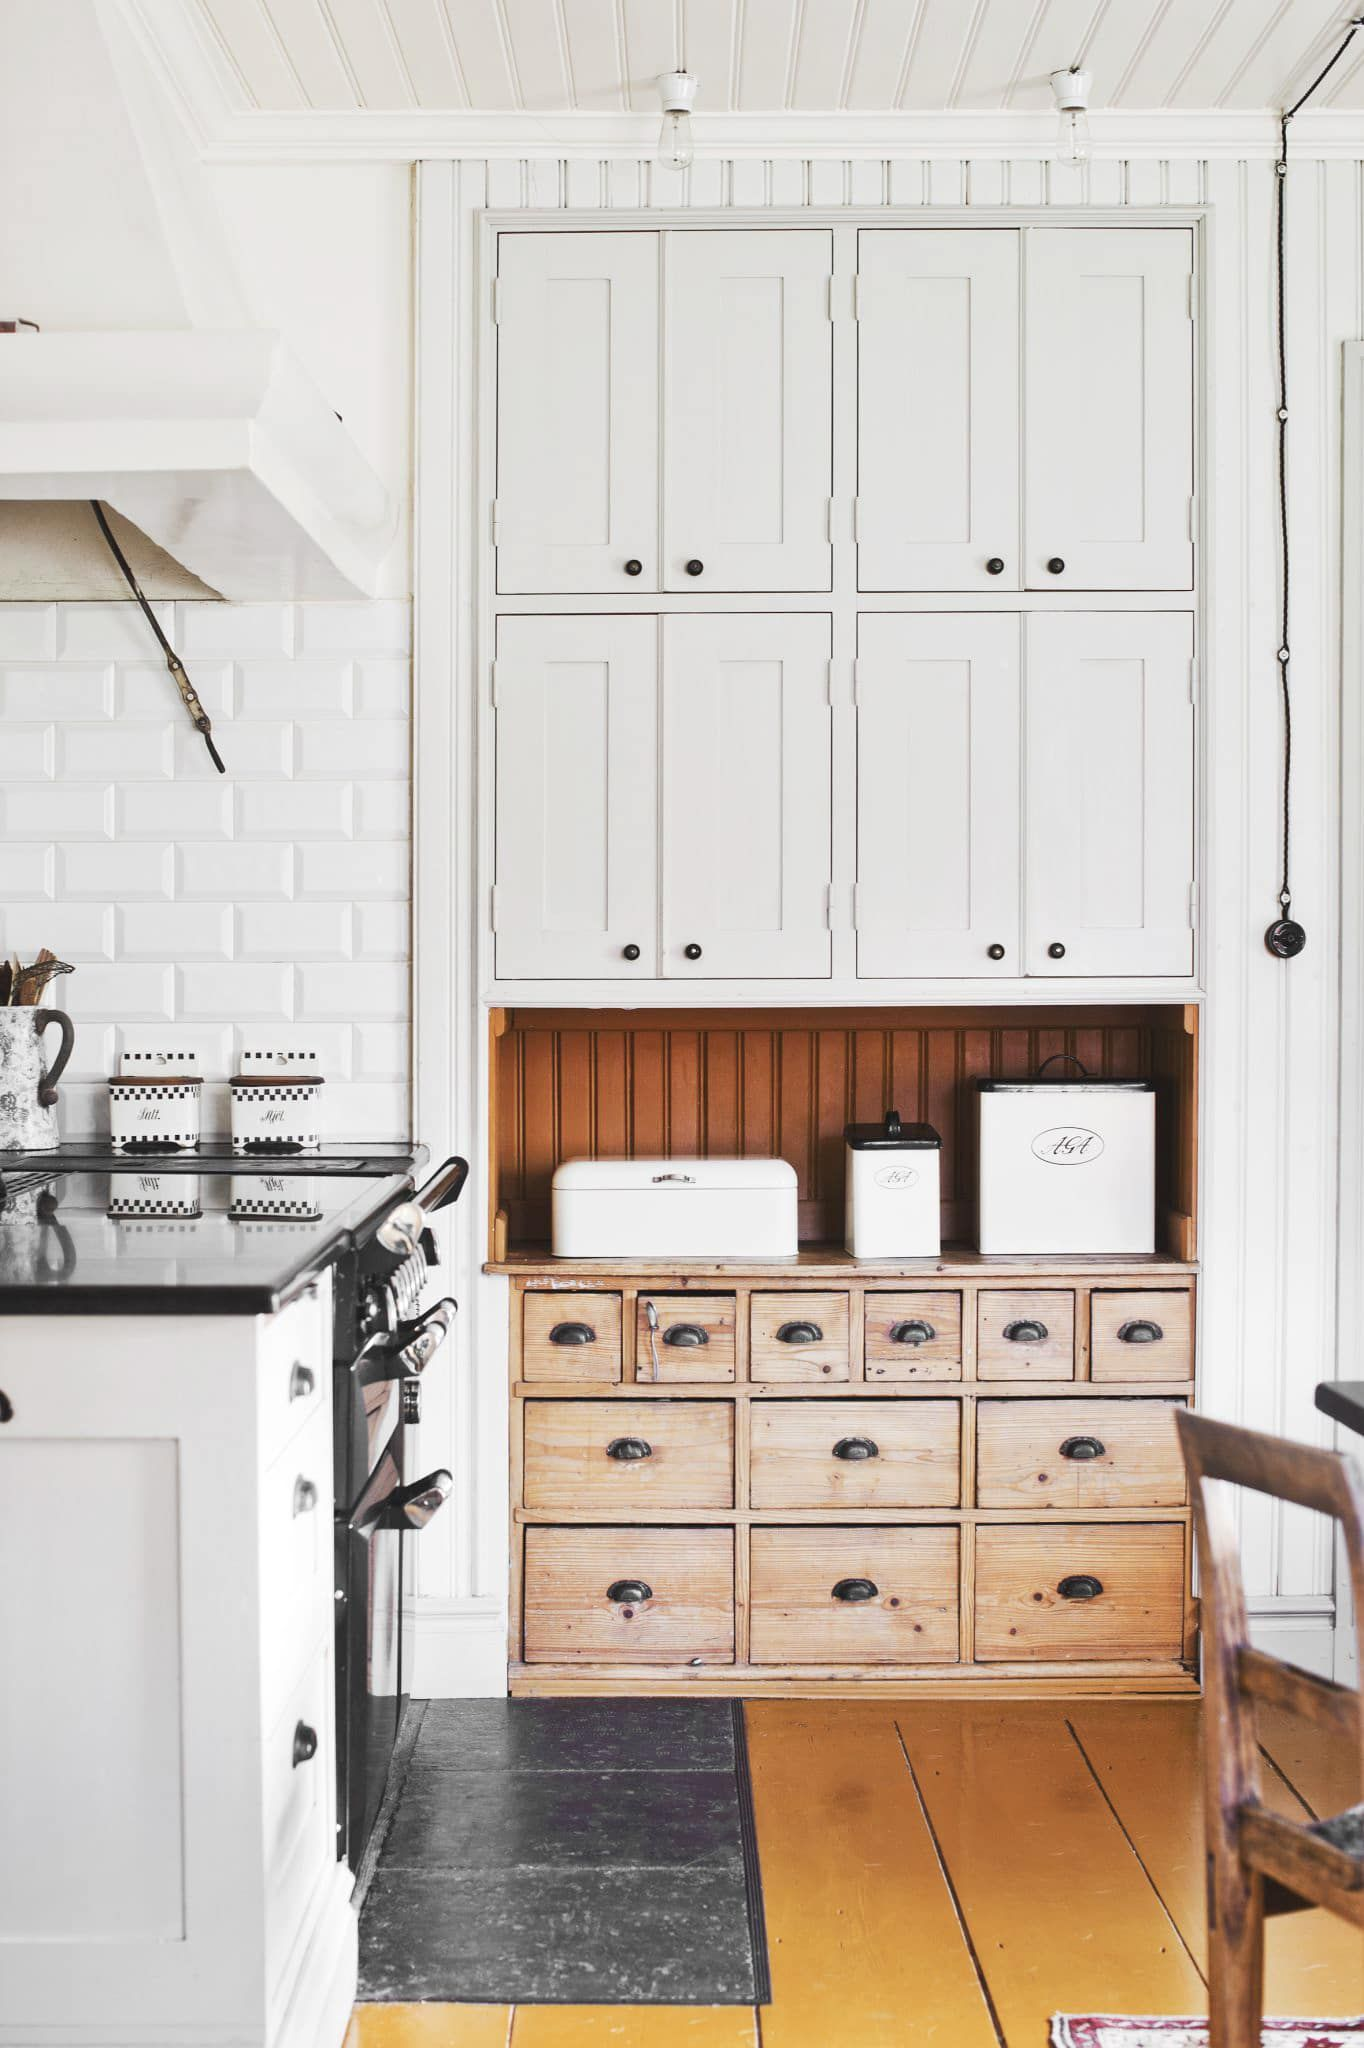 let s talk about the kitchen mudroom home decor kitchen interior design kitchen kitchen on kitchen interior classic id=84684